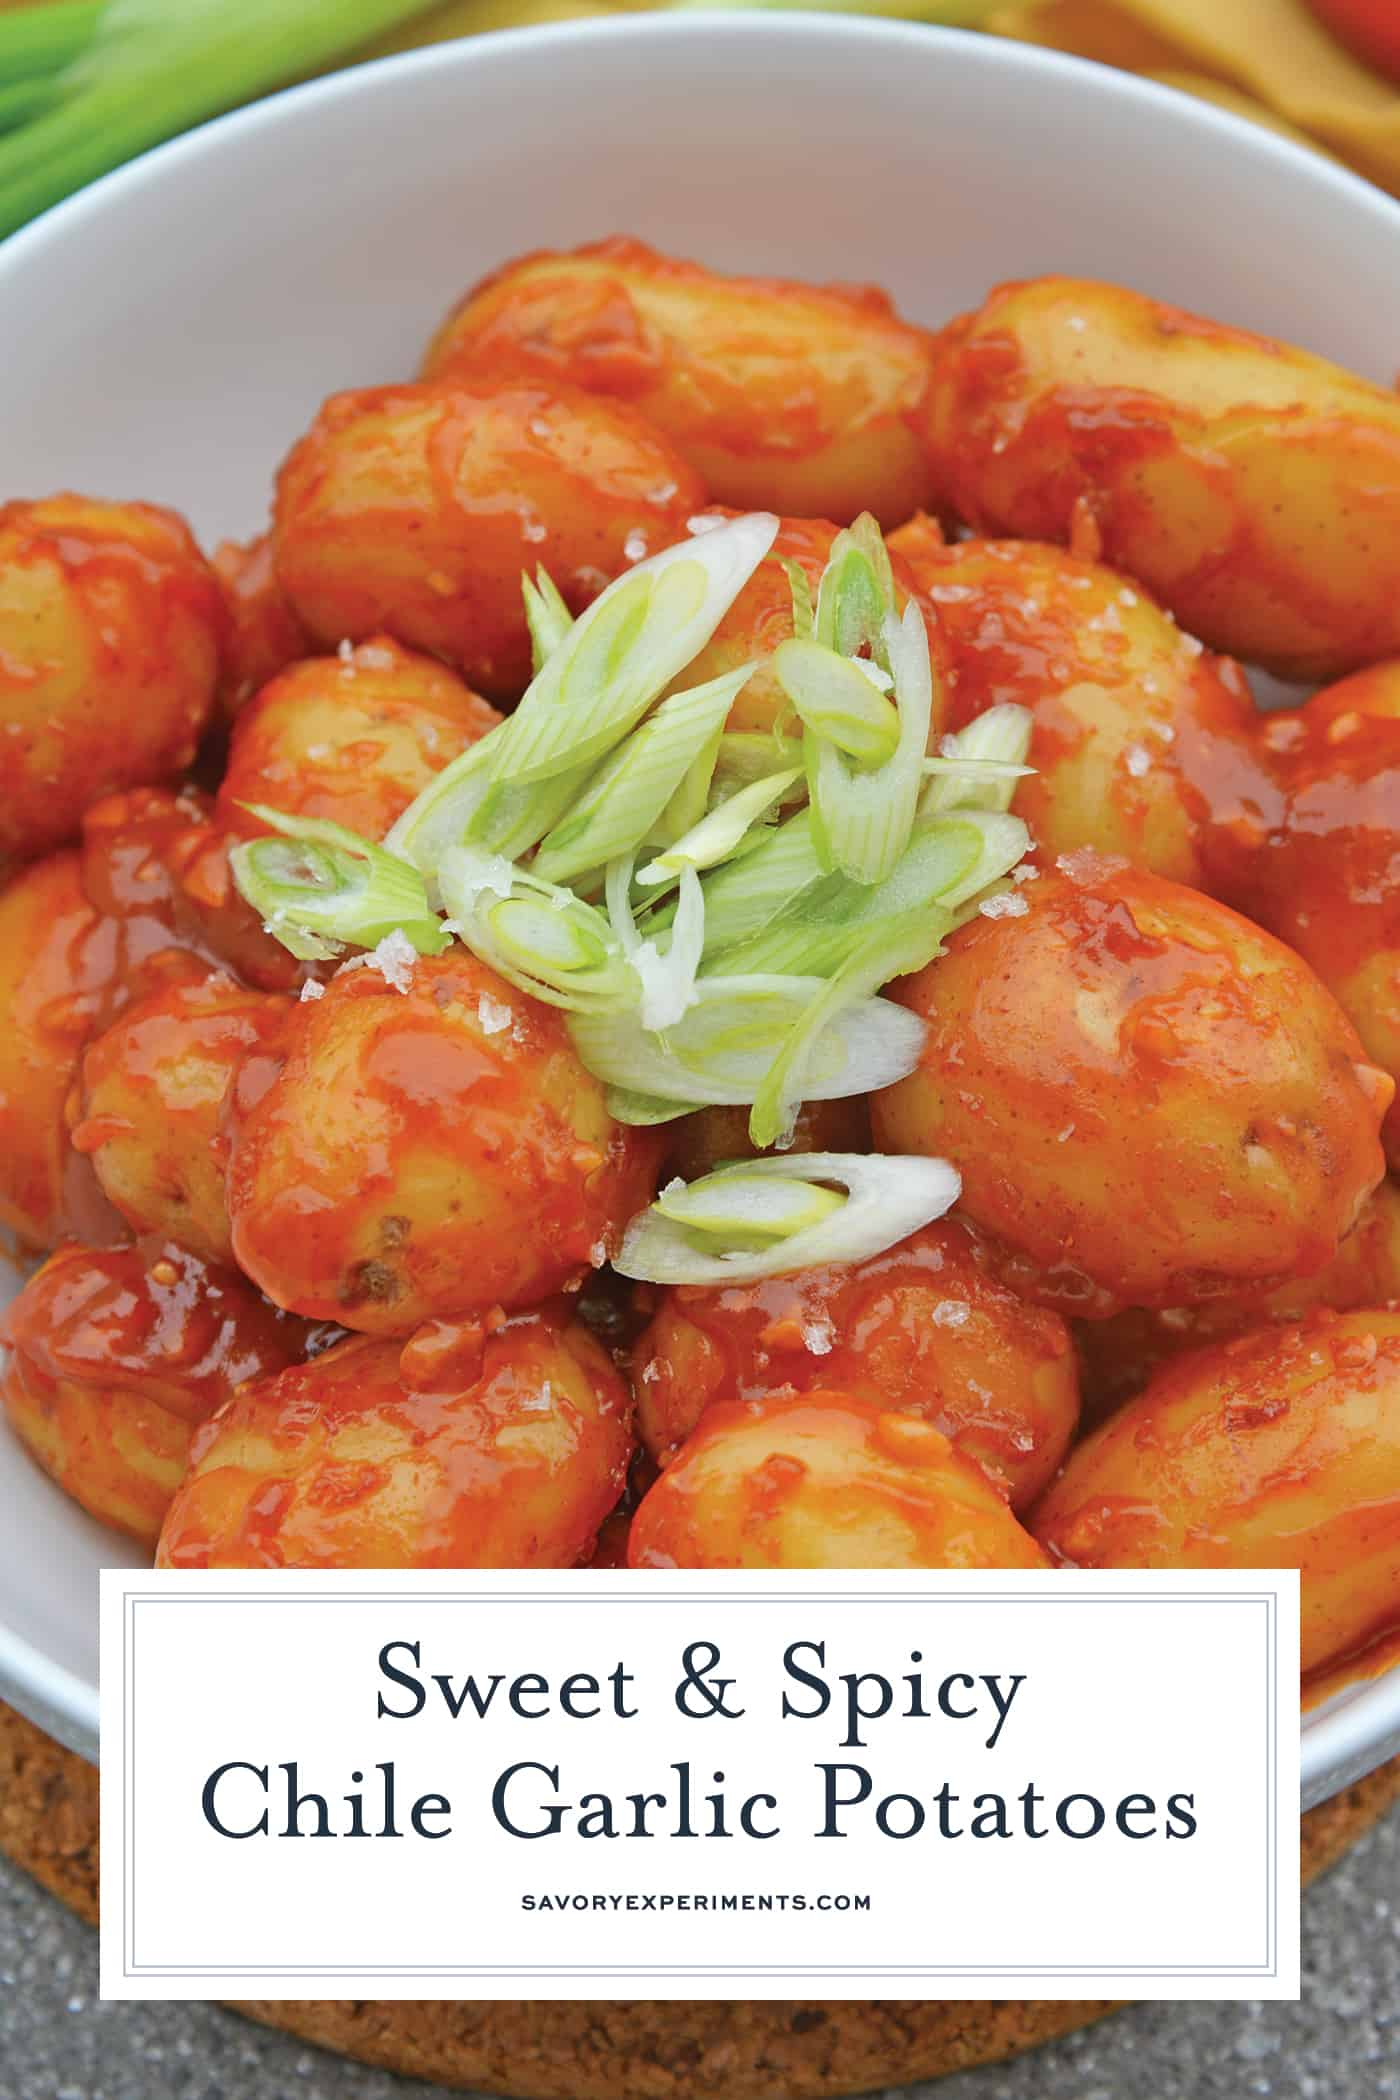 Chile Garlic Potatoes are an easy potato side dish using baby potatoes in a sweet and spicy sauce. #potatosidedish www.savoryexperiments.com